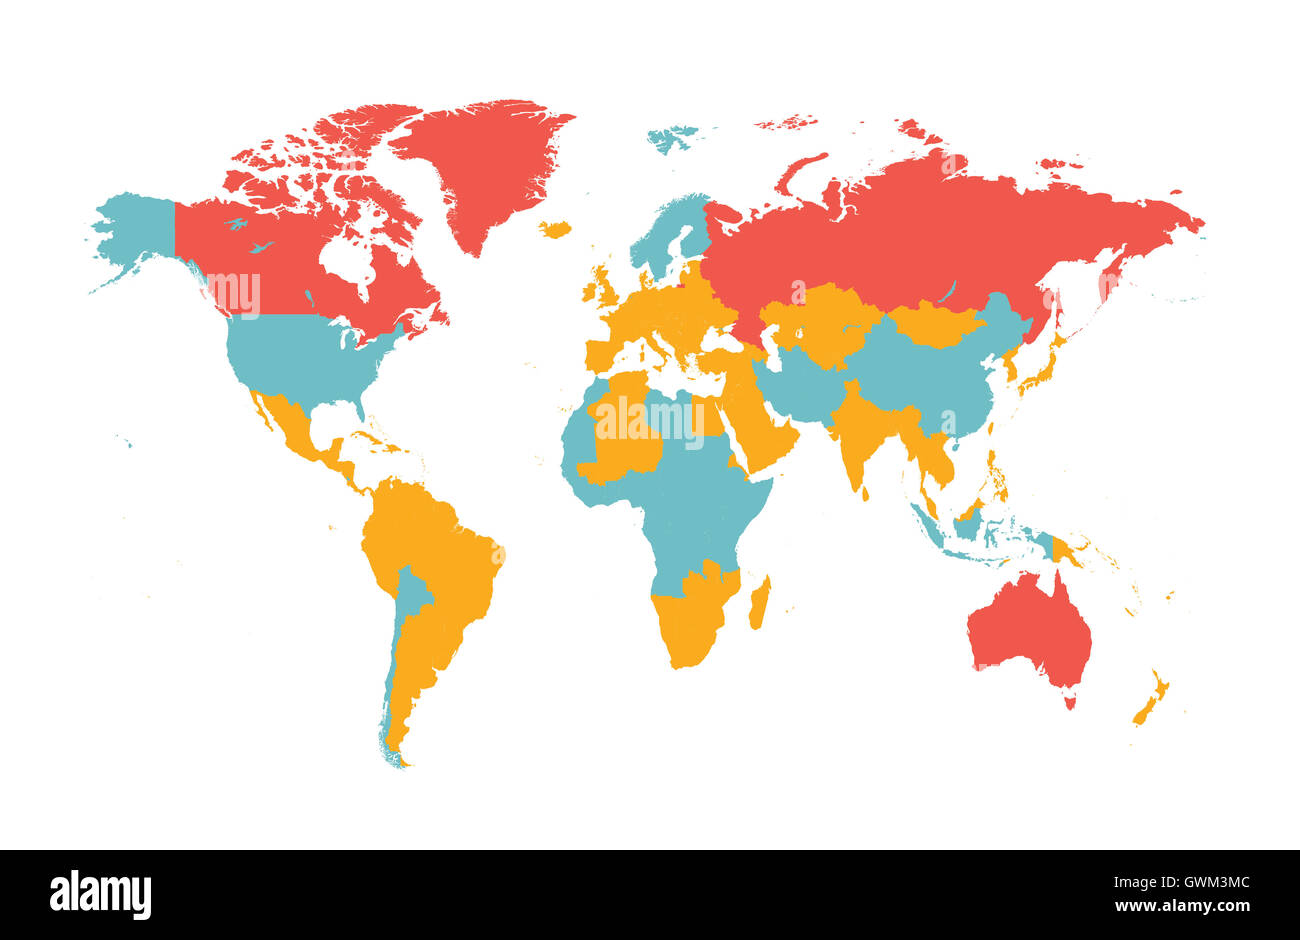 World Map Vector Flat With Countries Stock Photo Royalty Free - Map of the globe with countries